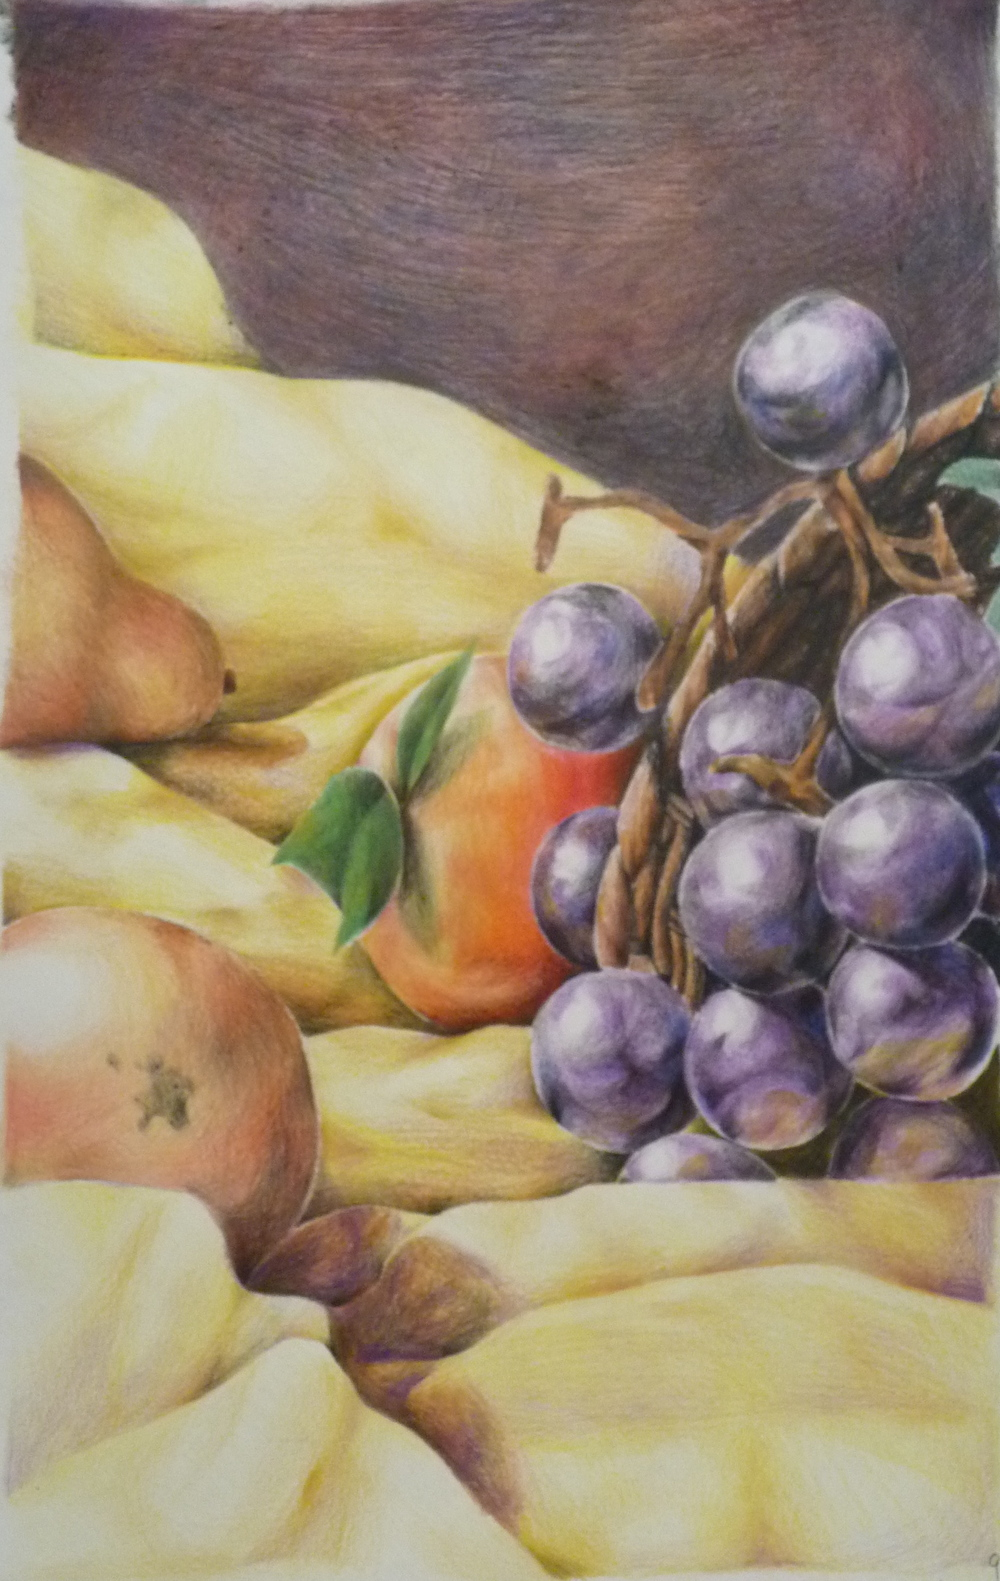 Drawing 2- colored pencil